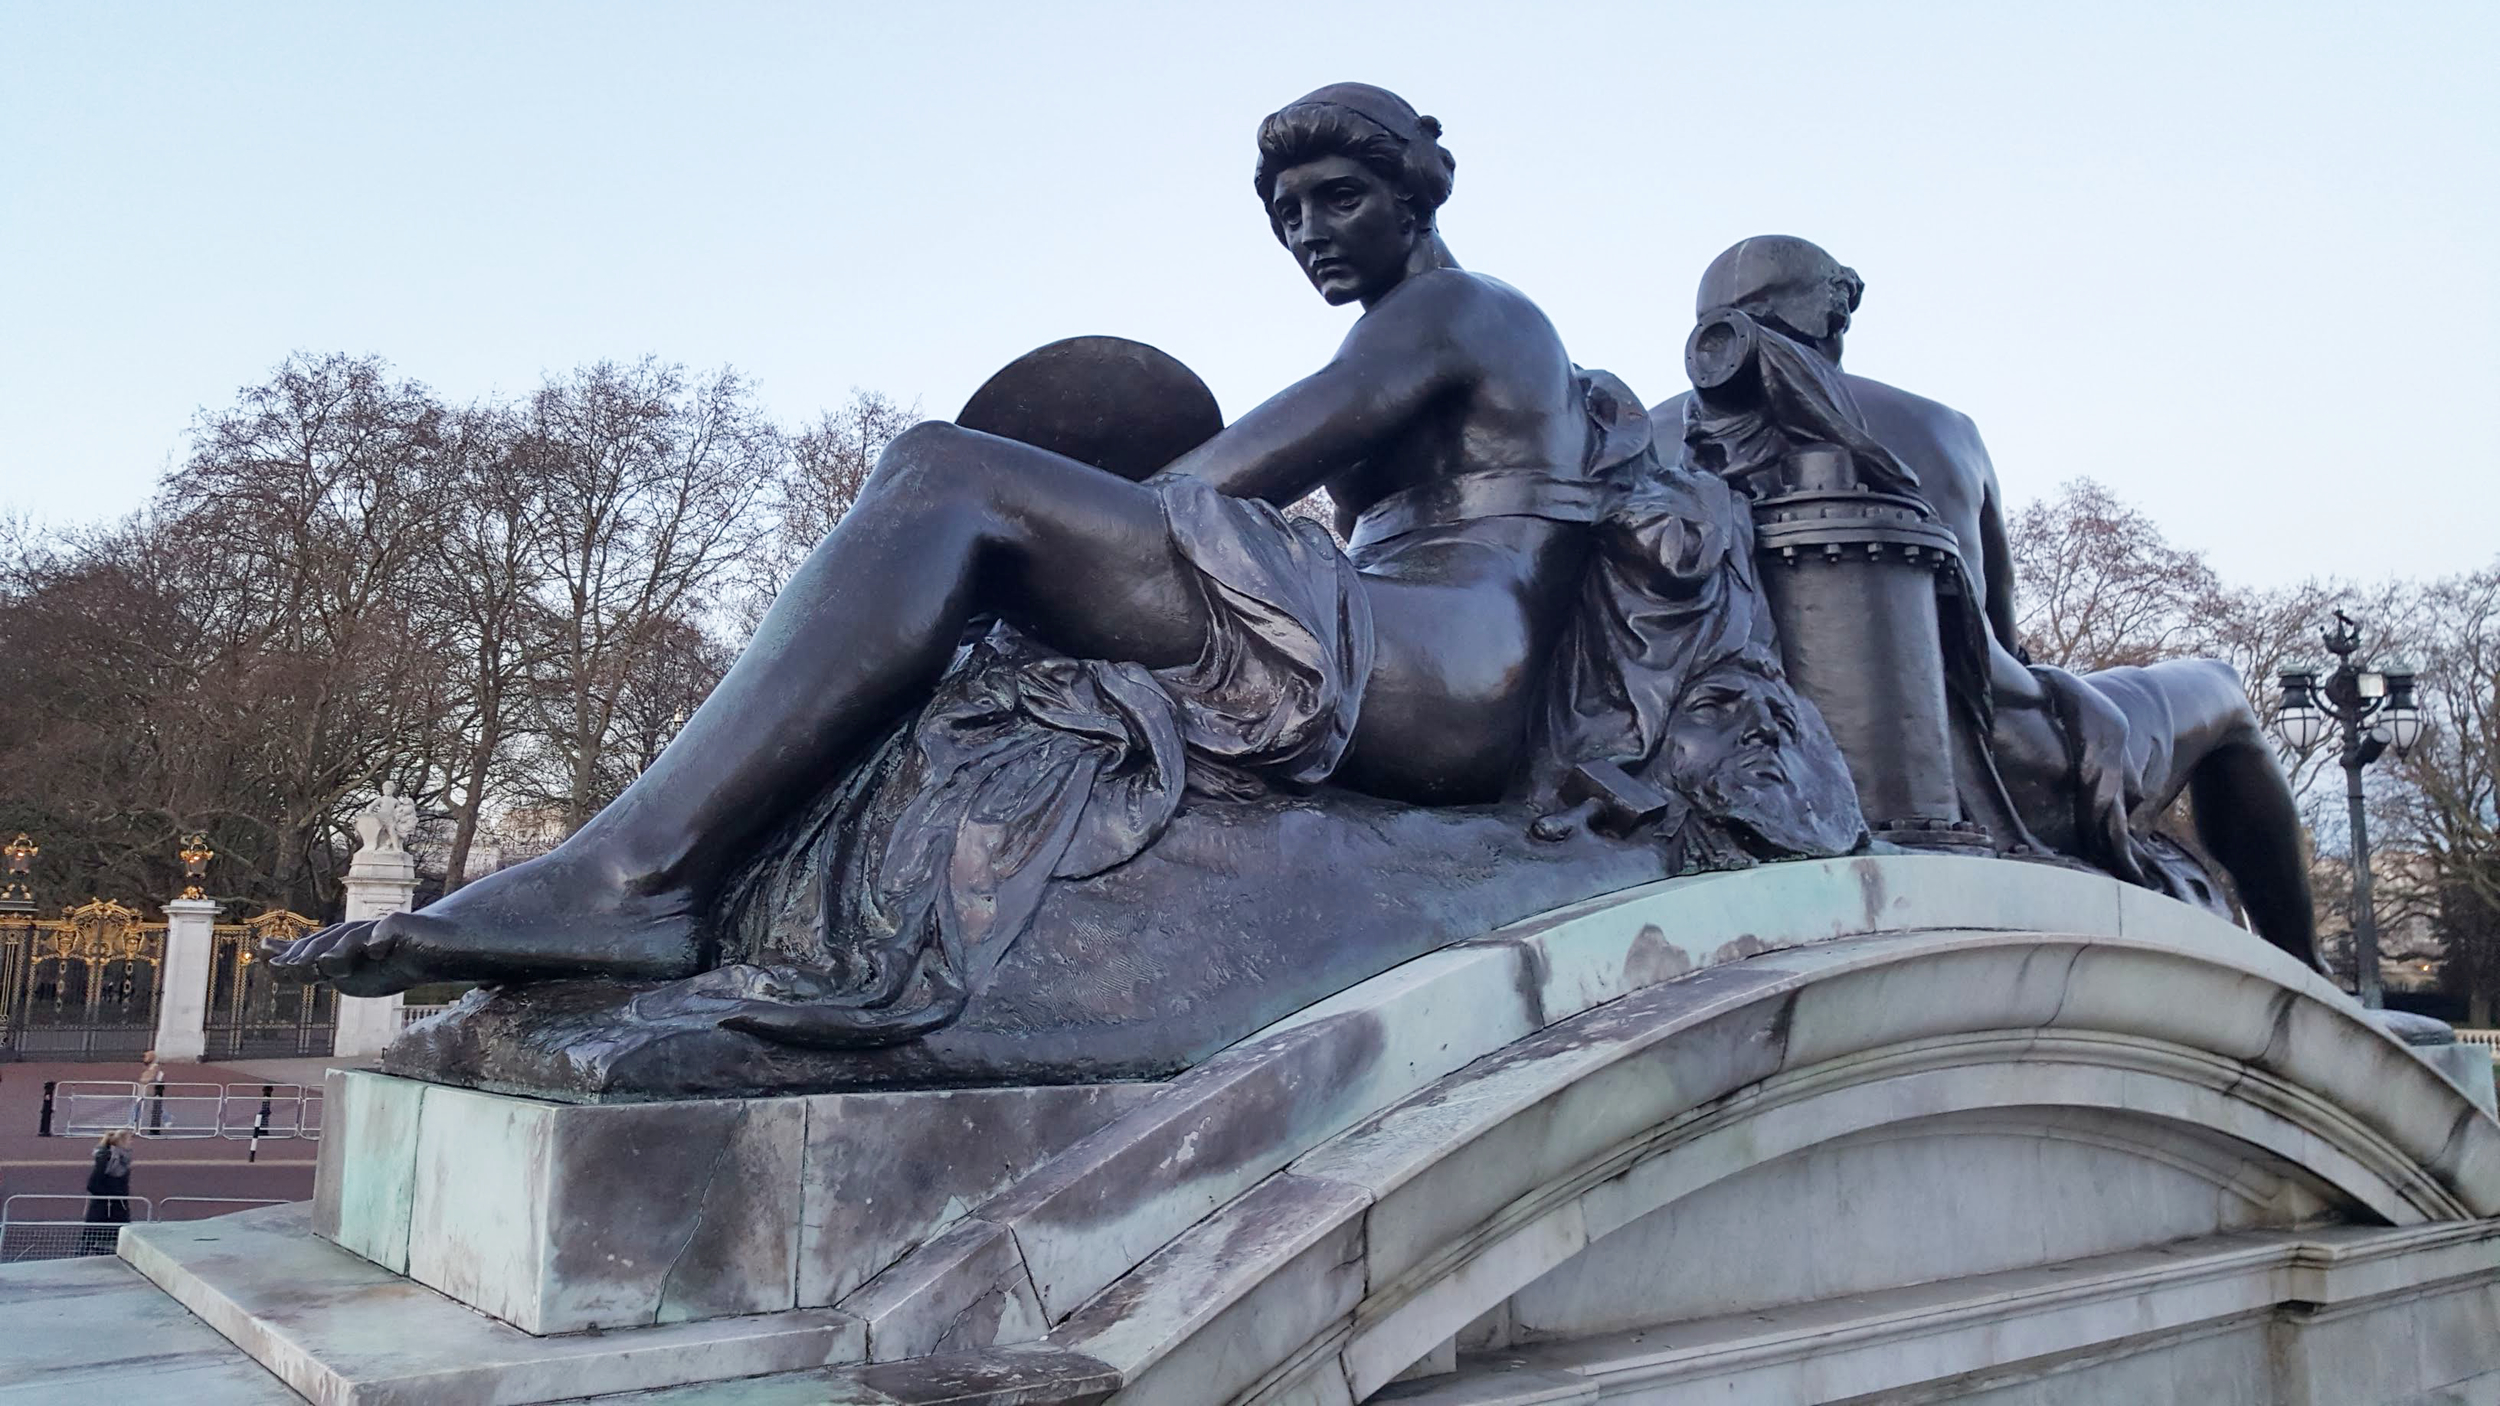 detail from the Queen Victoria statue in front of Buckingham Palace, London